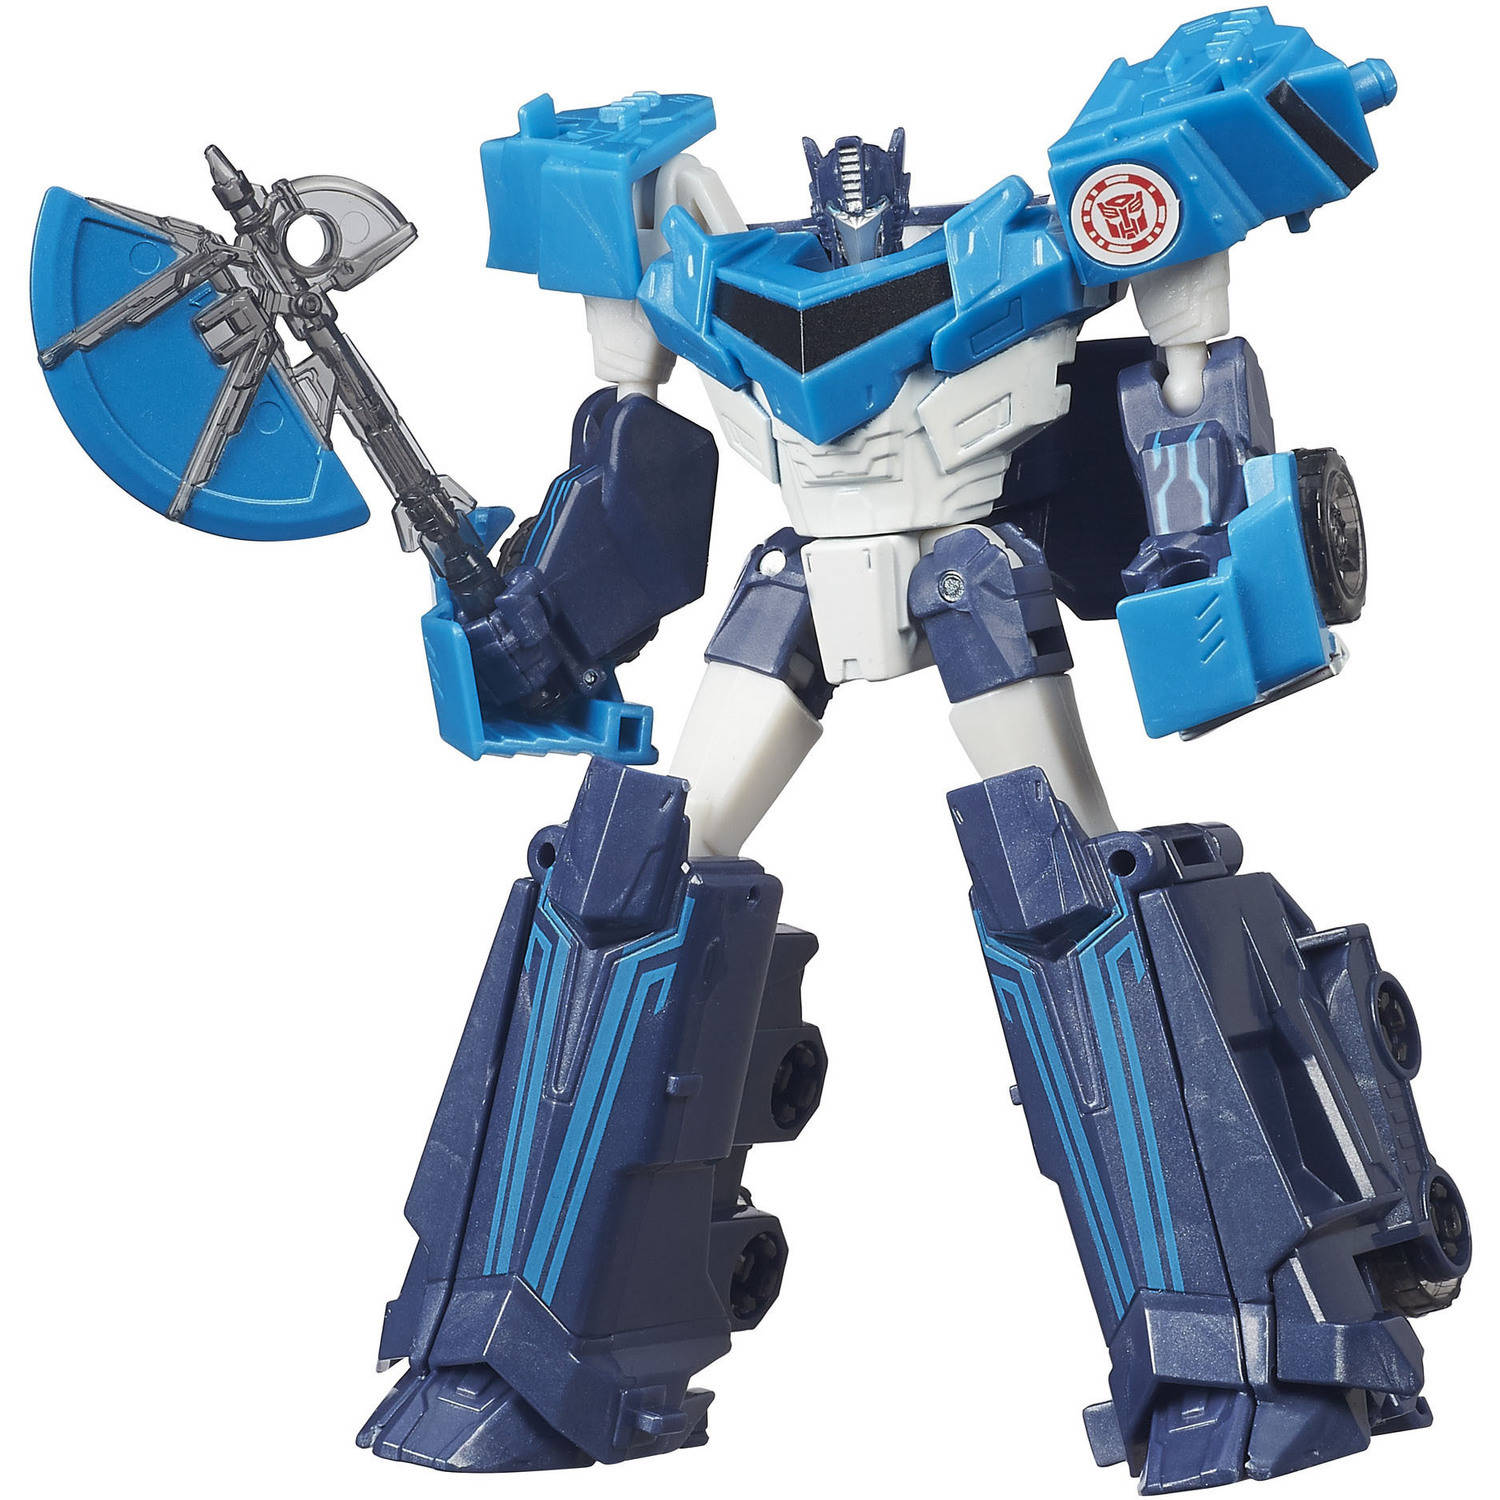 Transformers: Robots in Disguise Blizzard Strike Optimus Prime by Hasbro